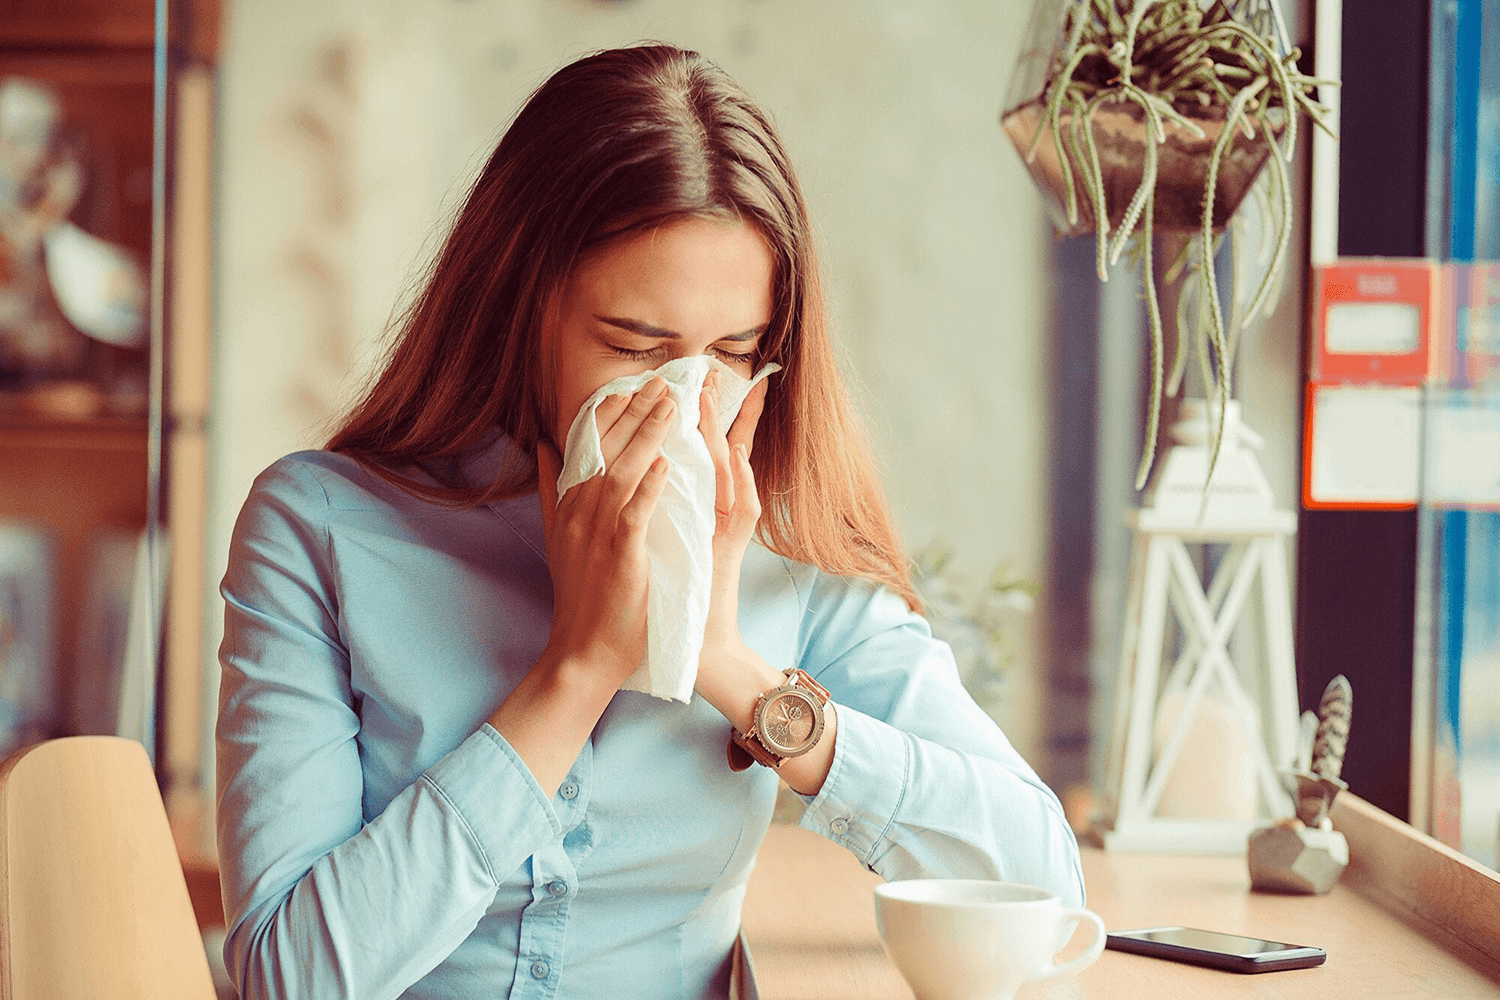 Contact Tracing To Reduce Flu Cases